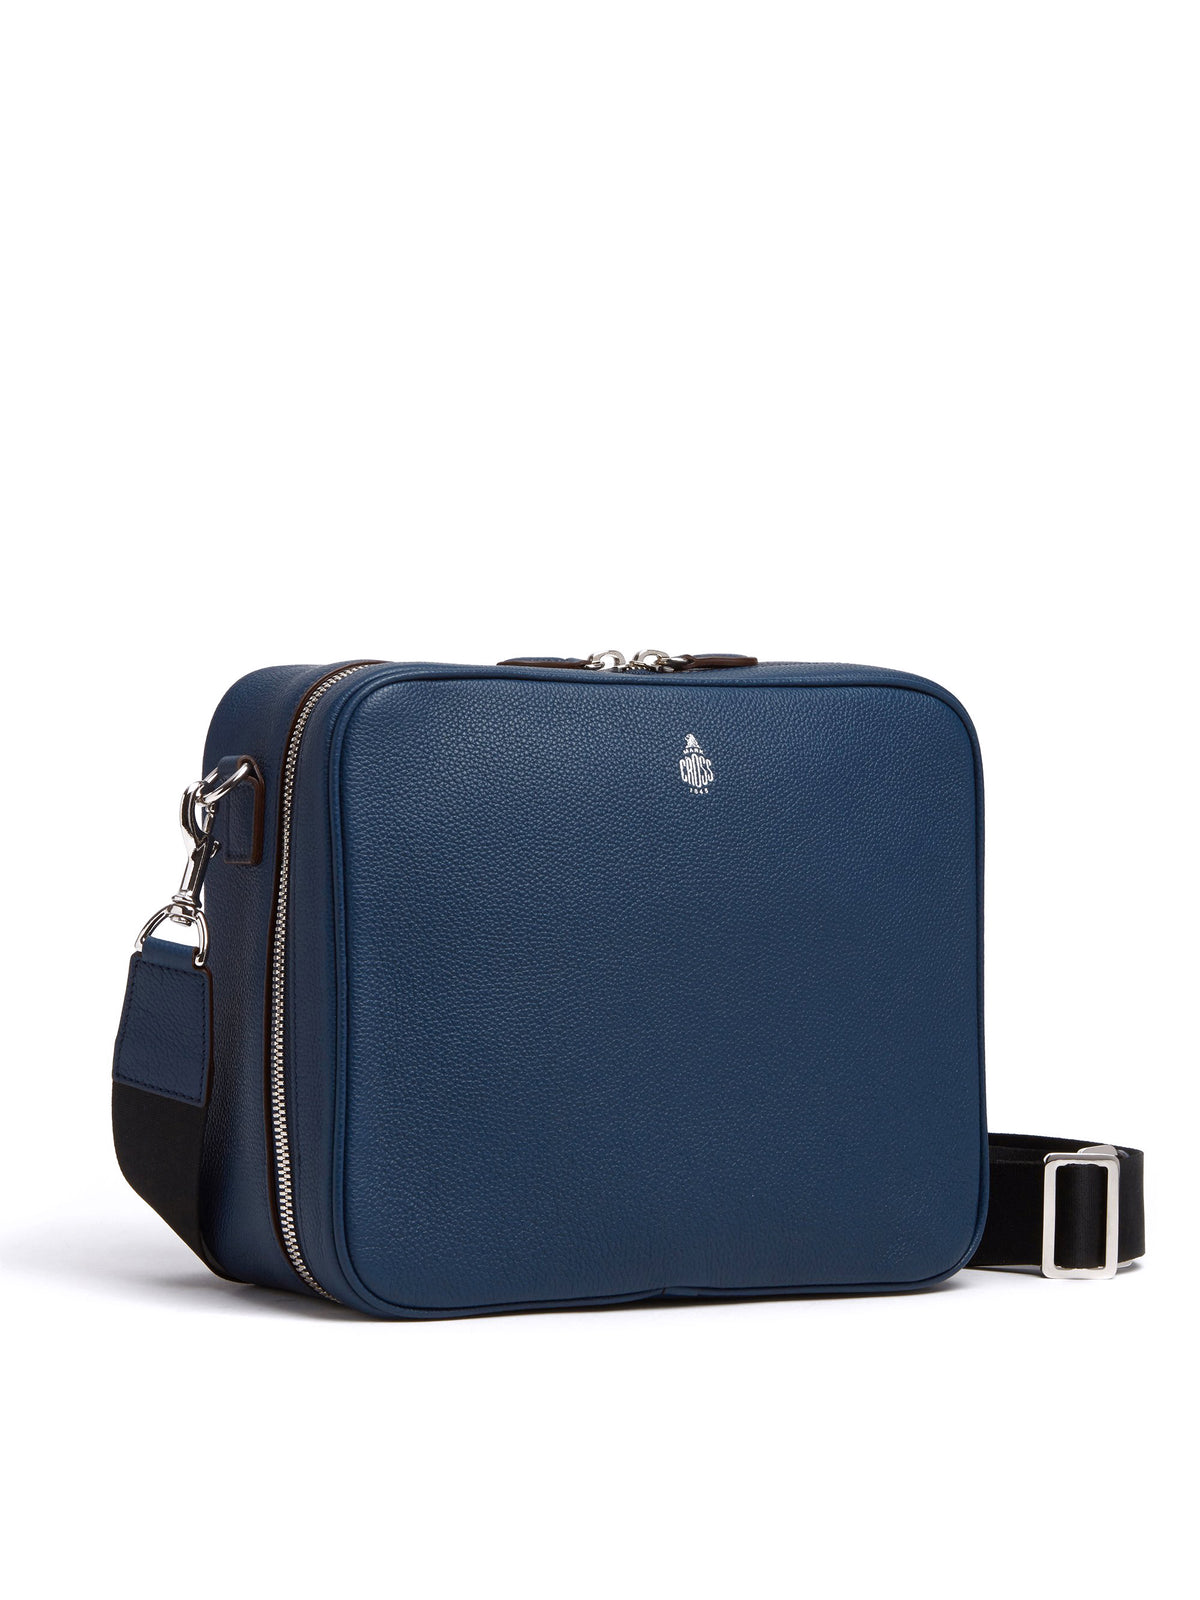 Mark Cross Baker Leather Messenger Bag Tumbled Grain Navy Side